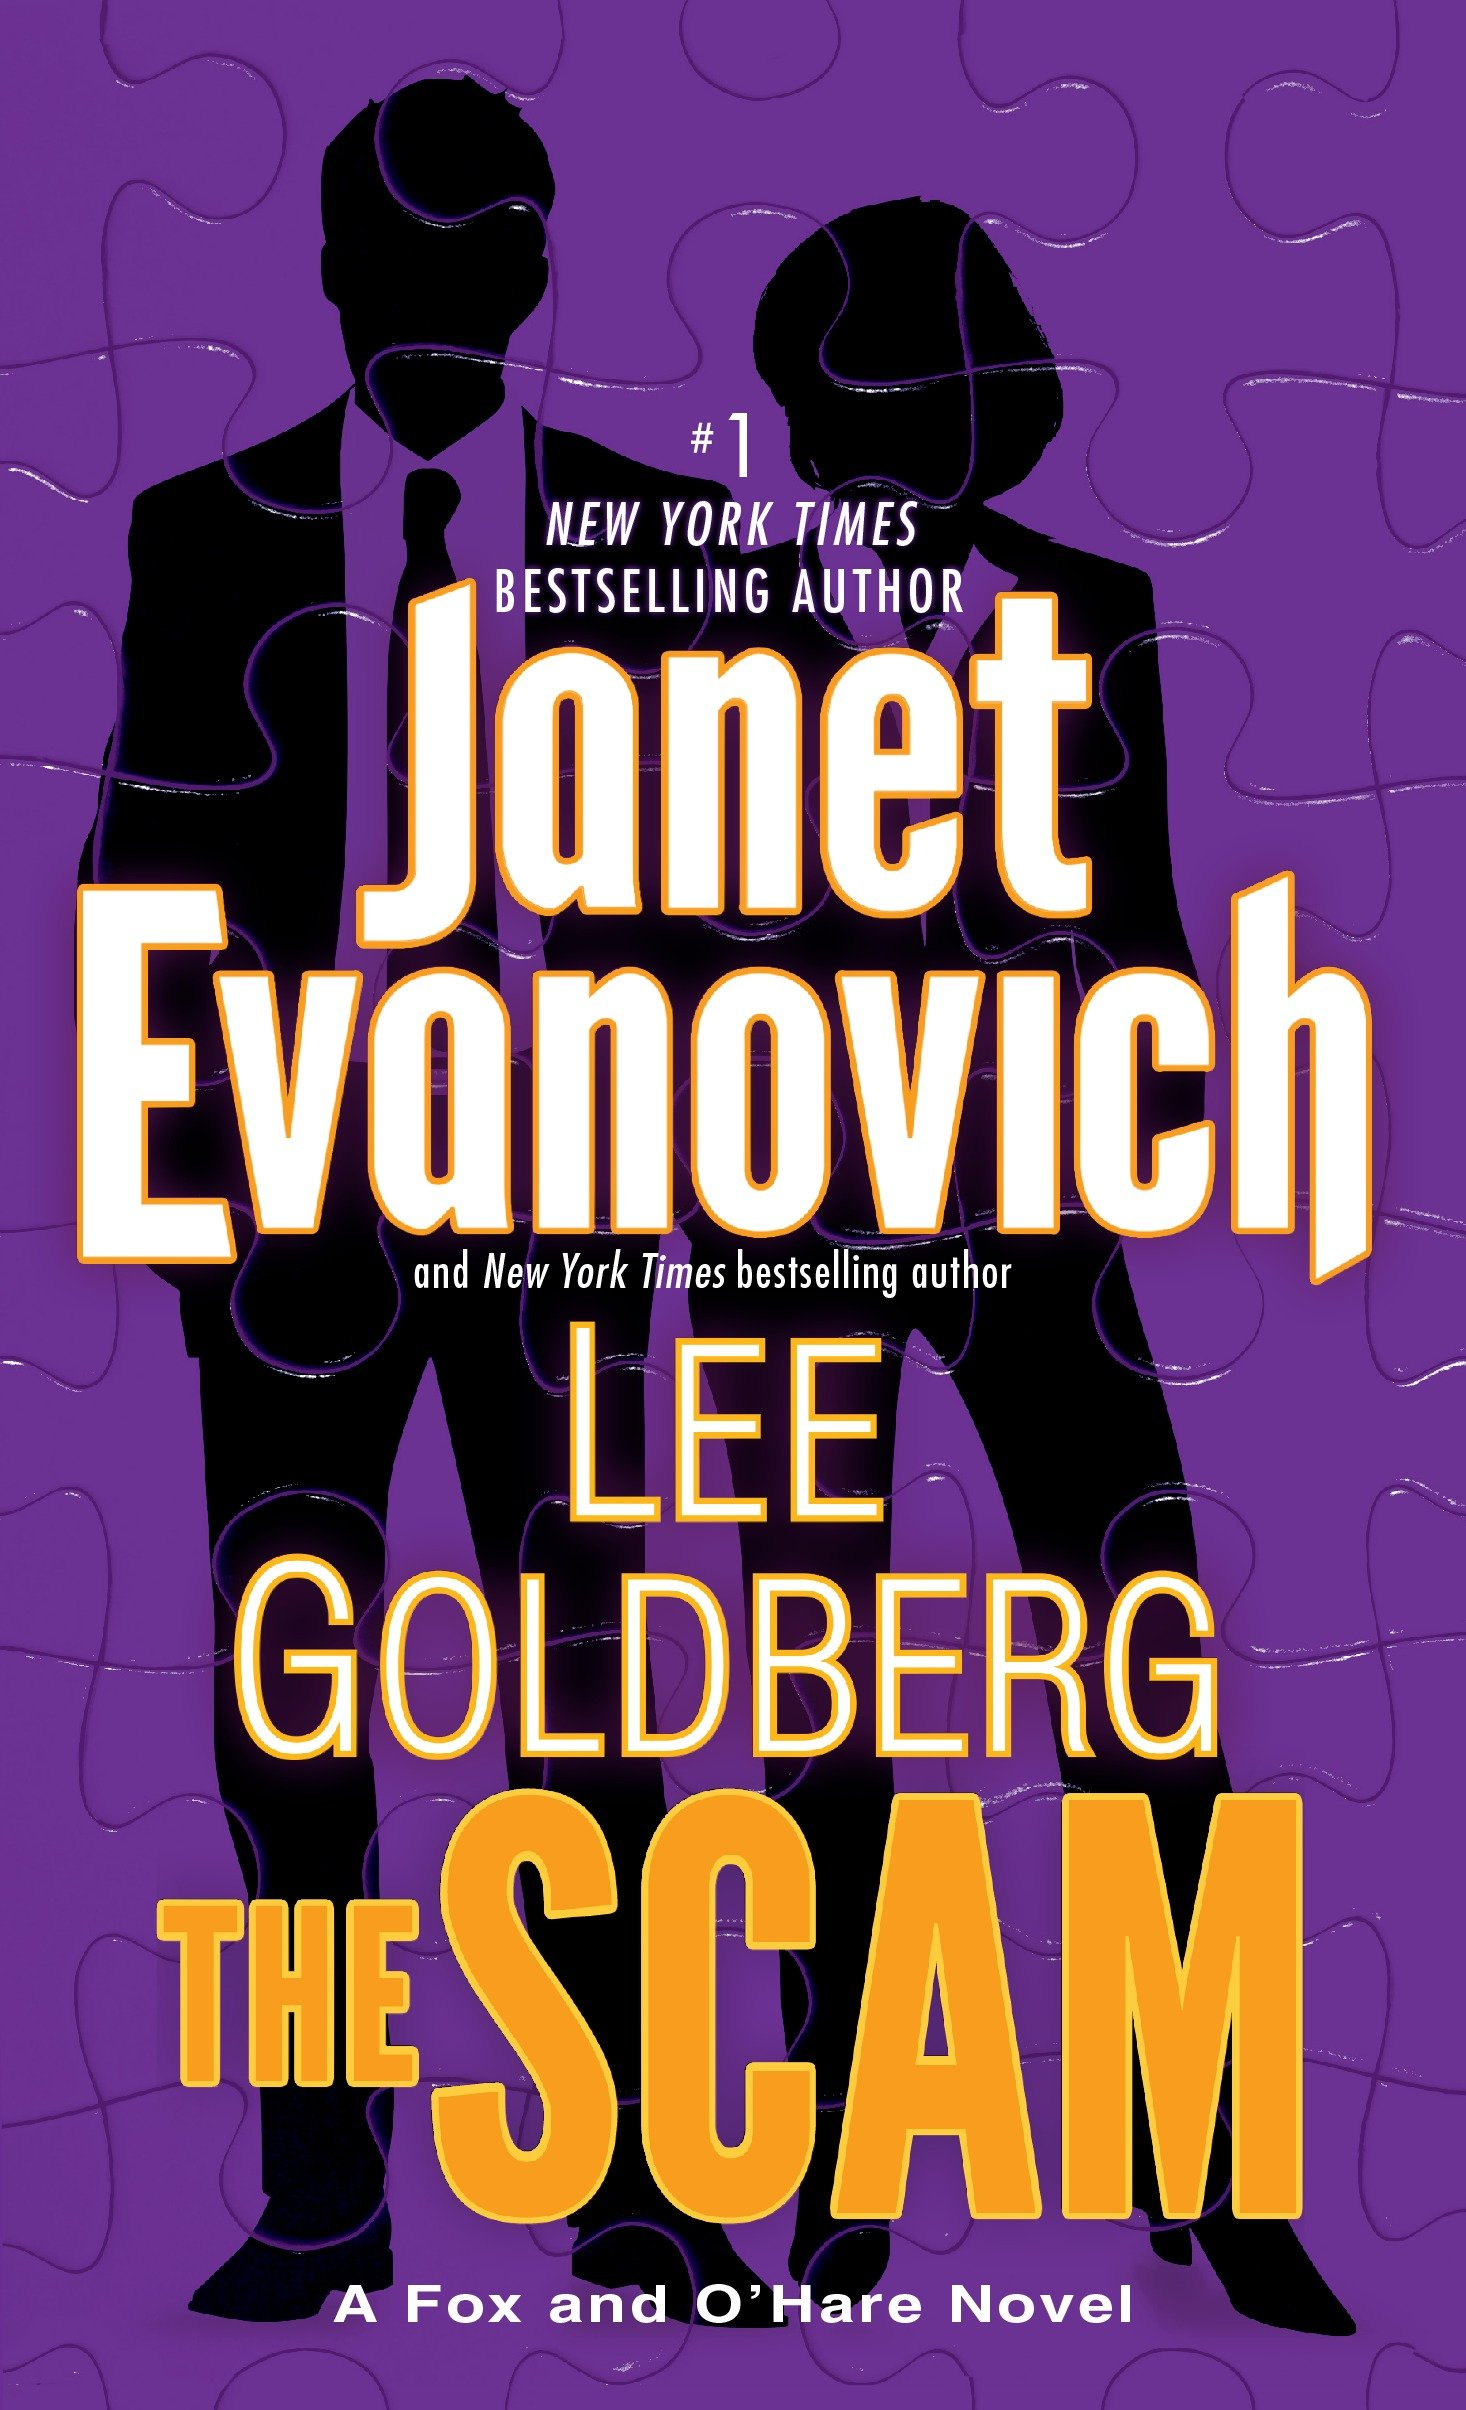 The Scam A Fox and O'Hare Novel